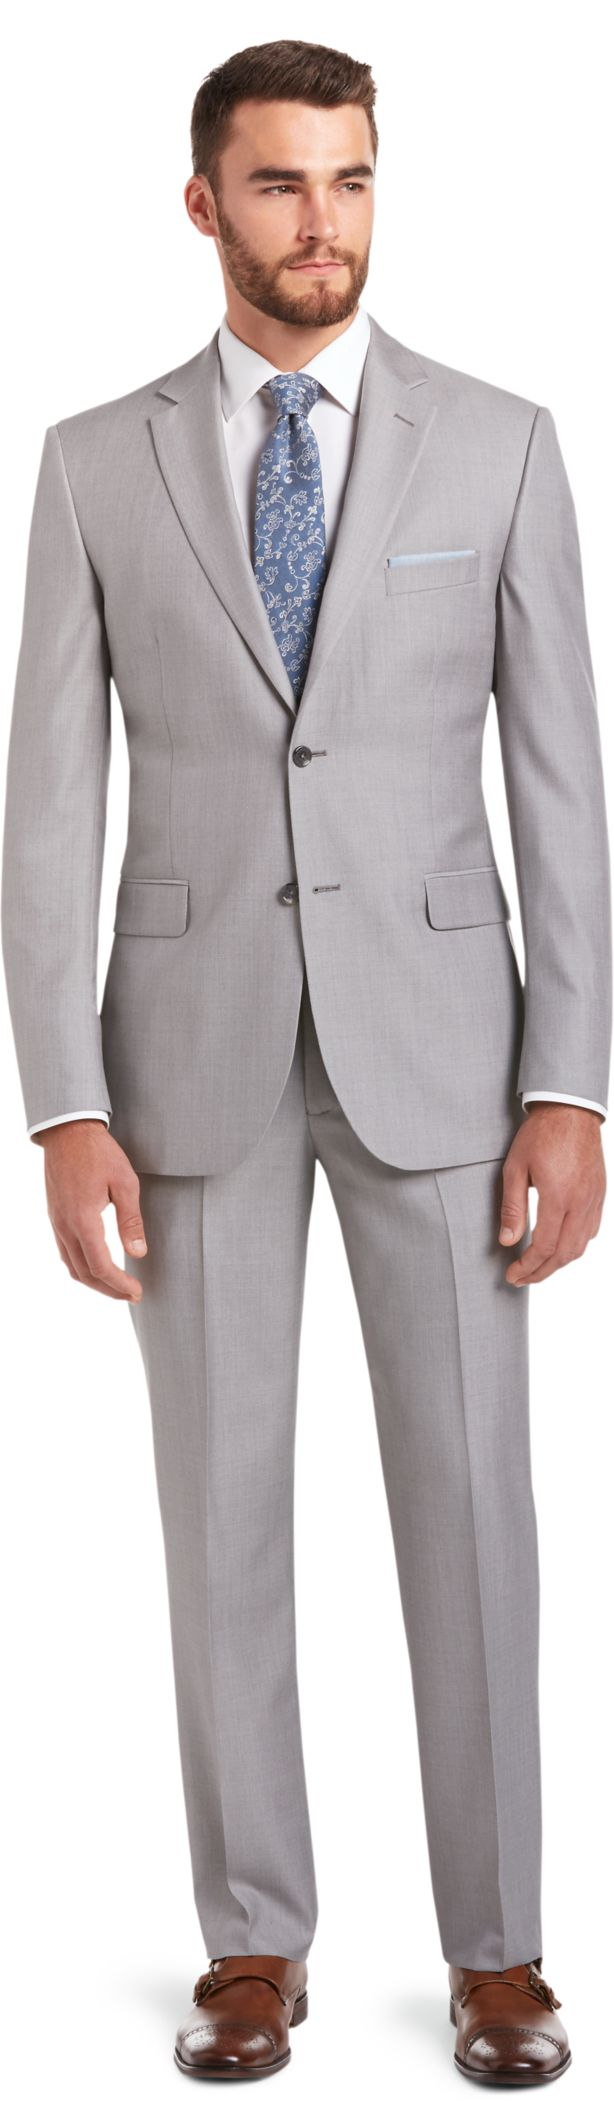 Signature Imperial Blend Collection Tailored Fit Suit - Suits ...